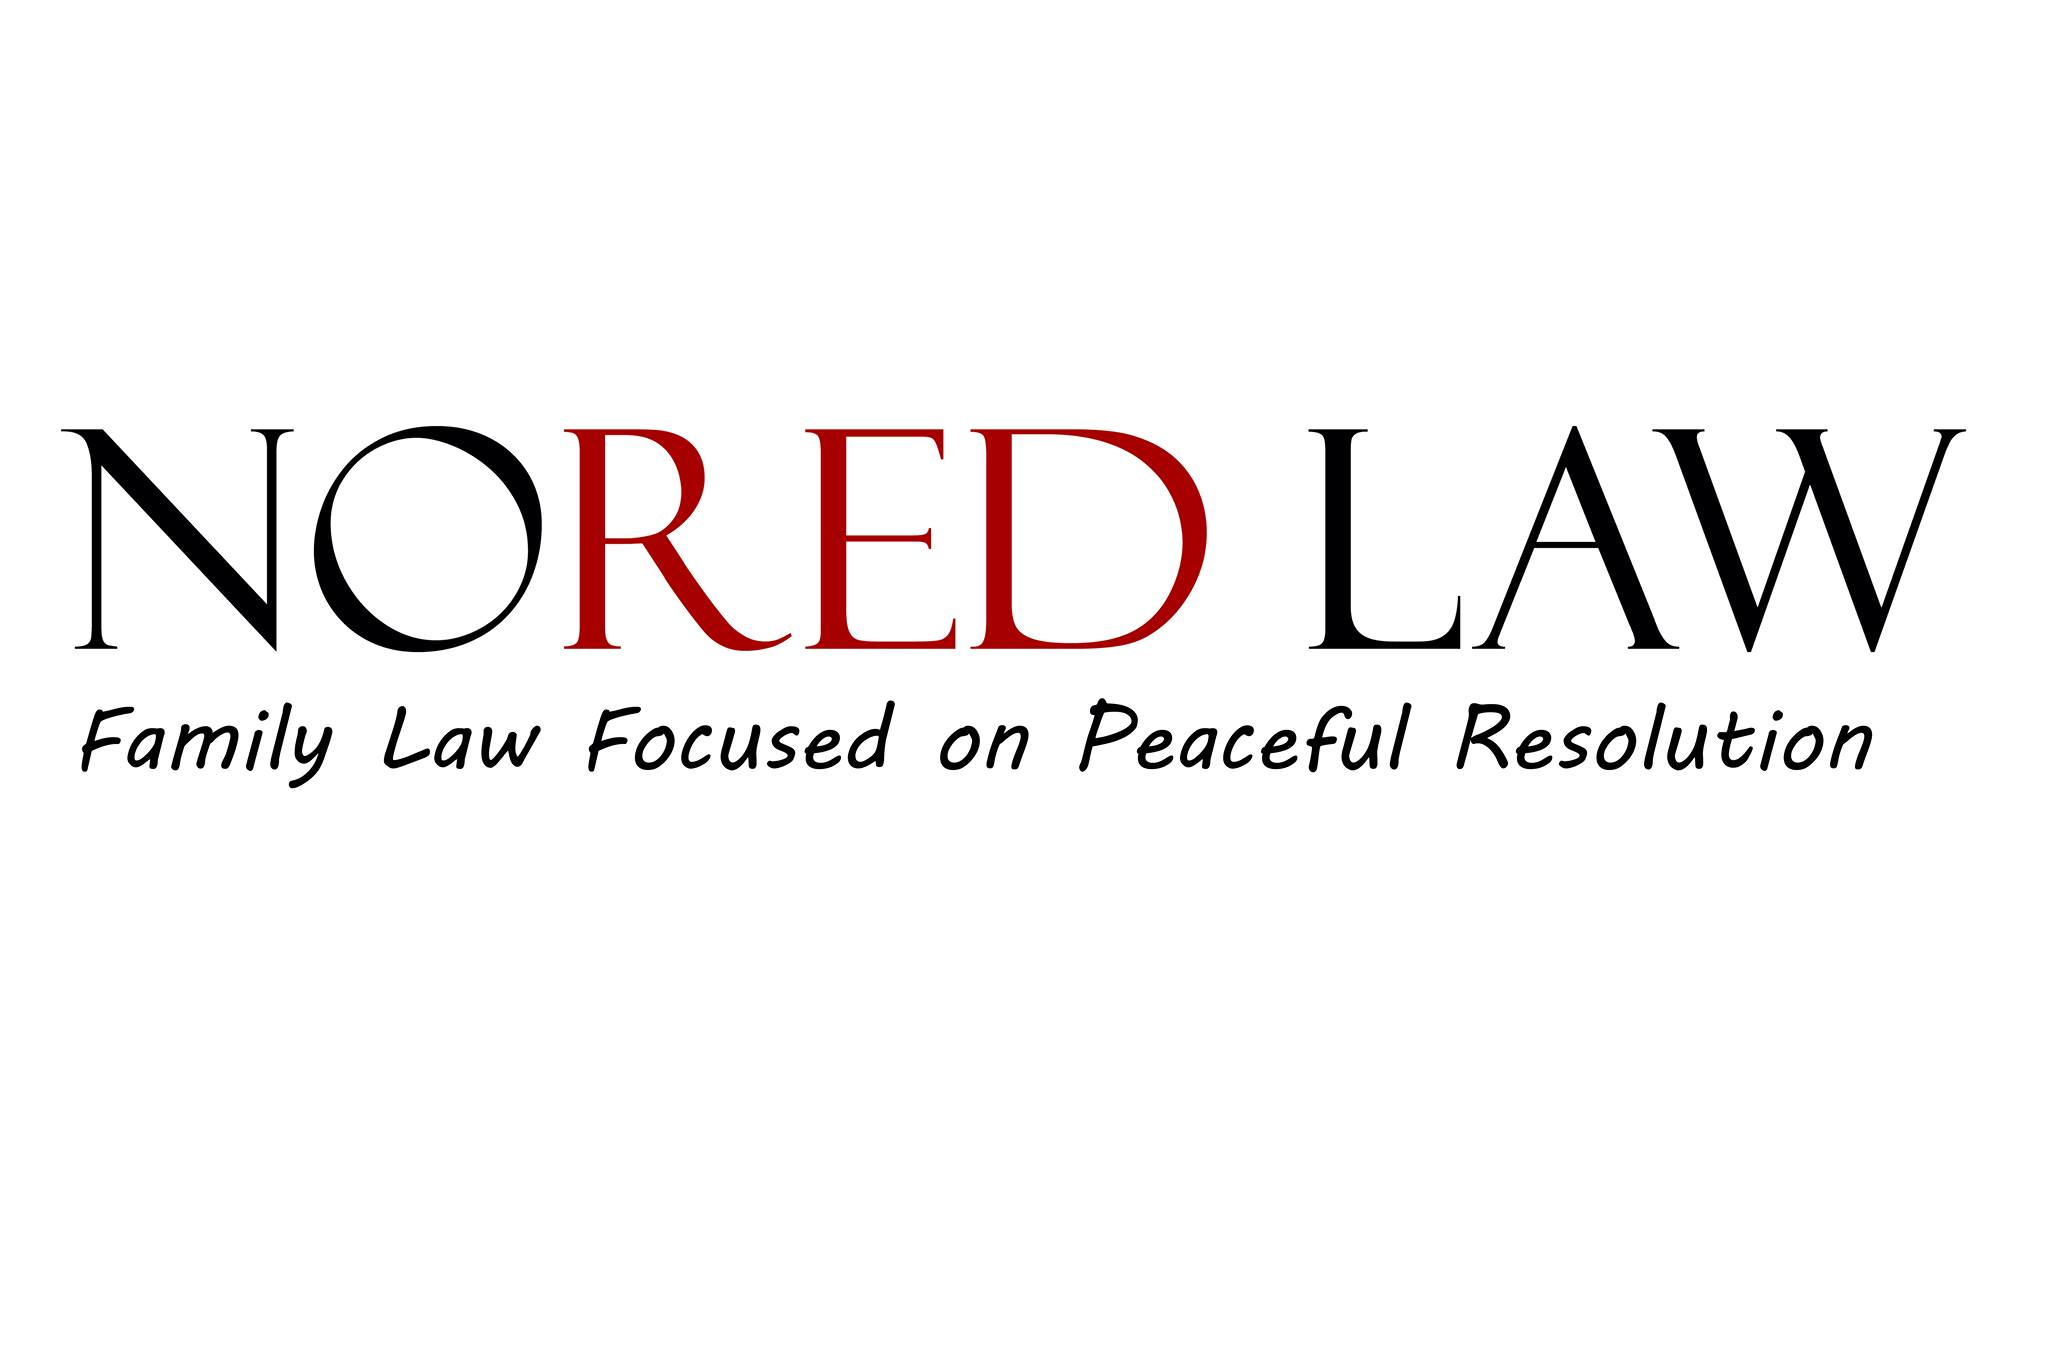 Nored Law | Lawyers in 15 S Grady Way - Renton WA - Reviews - Photos - Phone Number